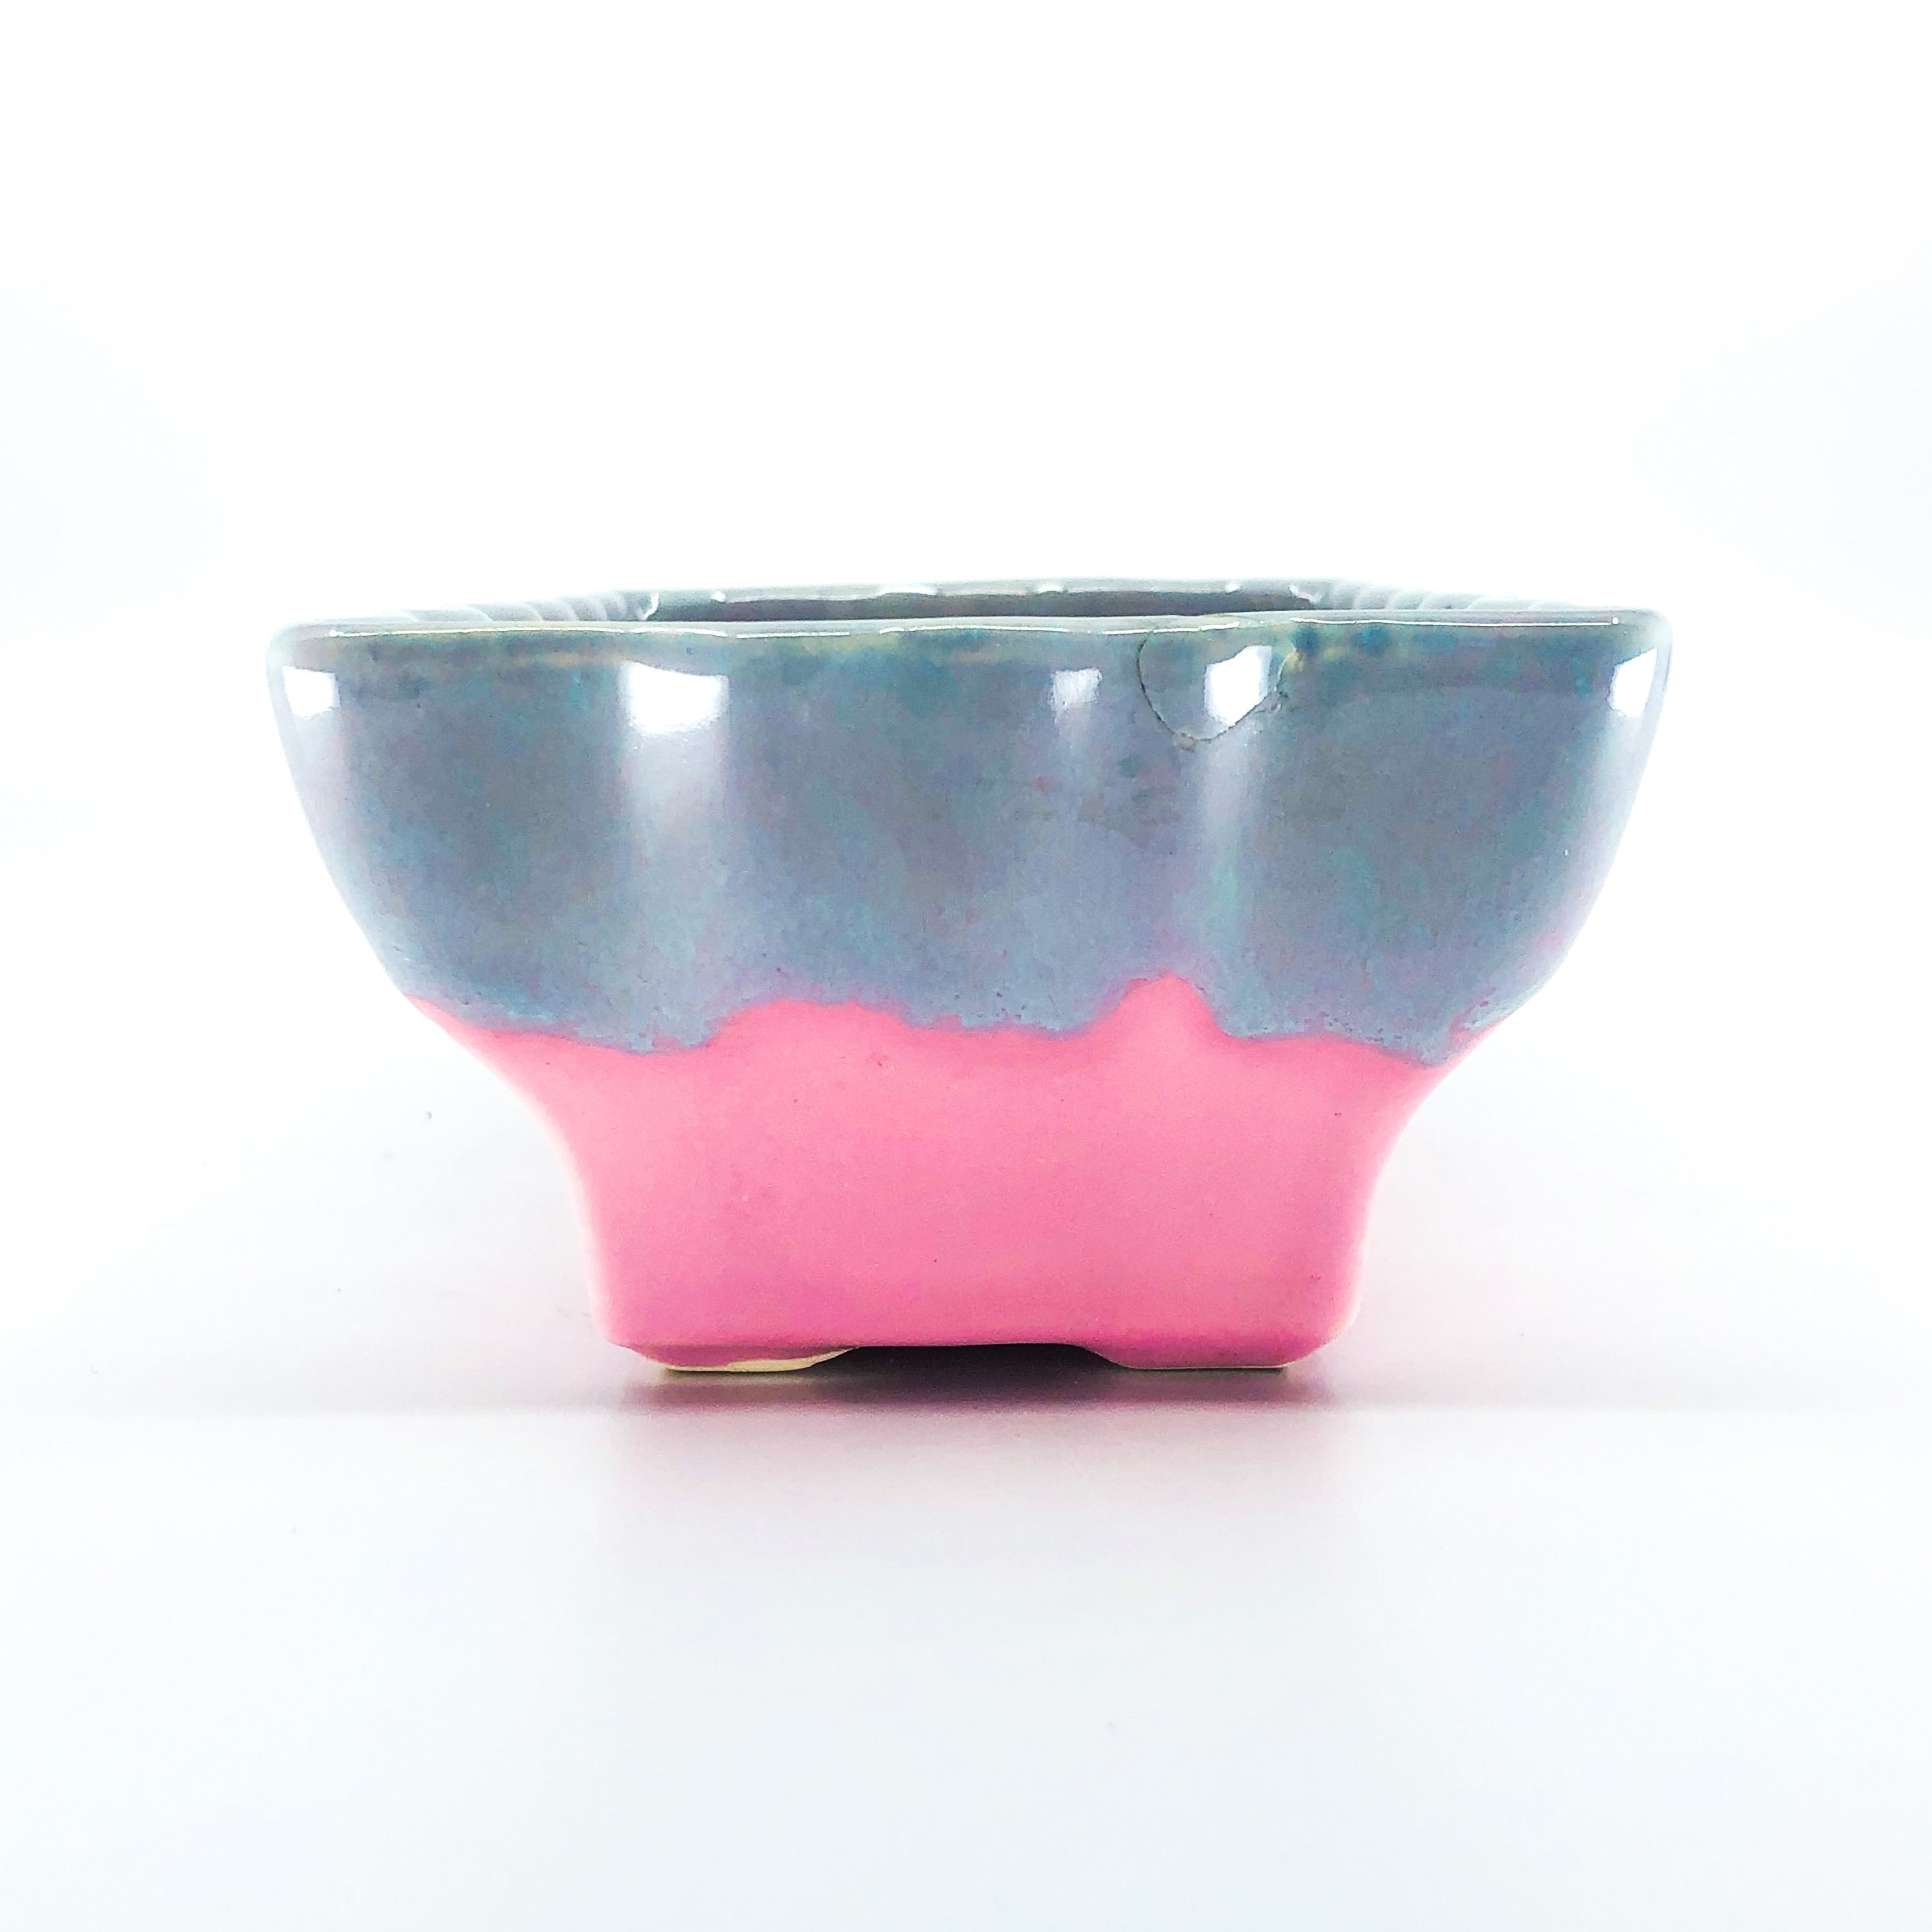 Vintage Hull USA Ceramic Candy Colored Planter / Dish